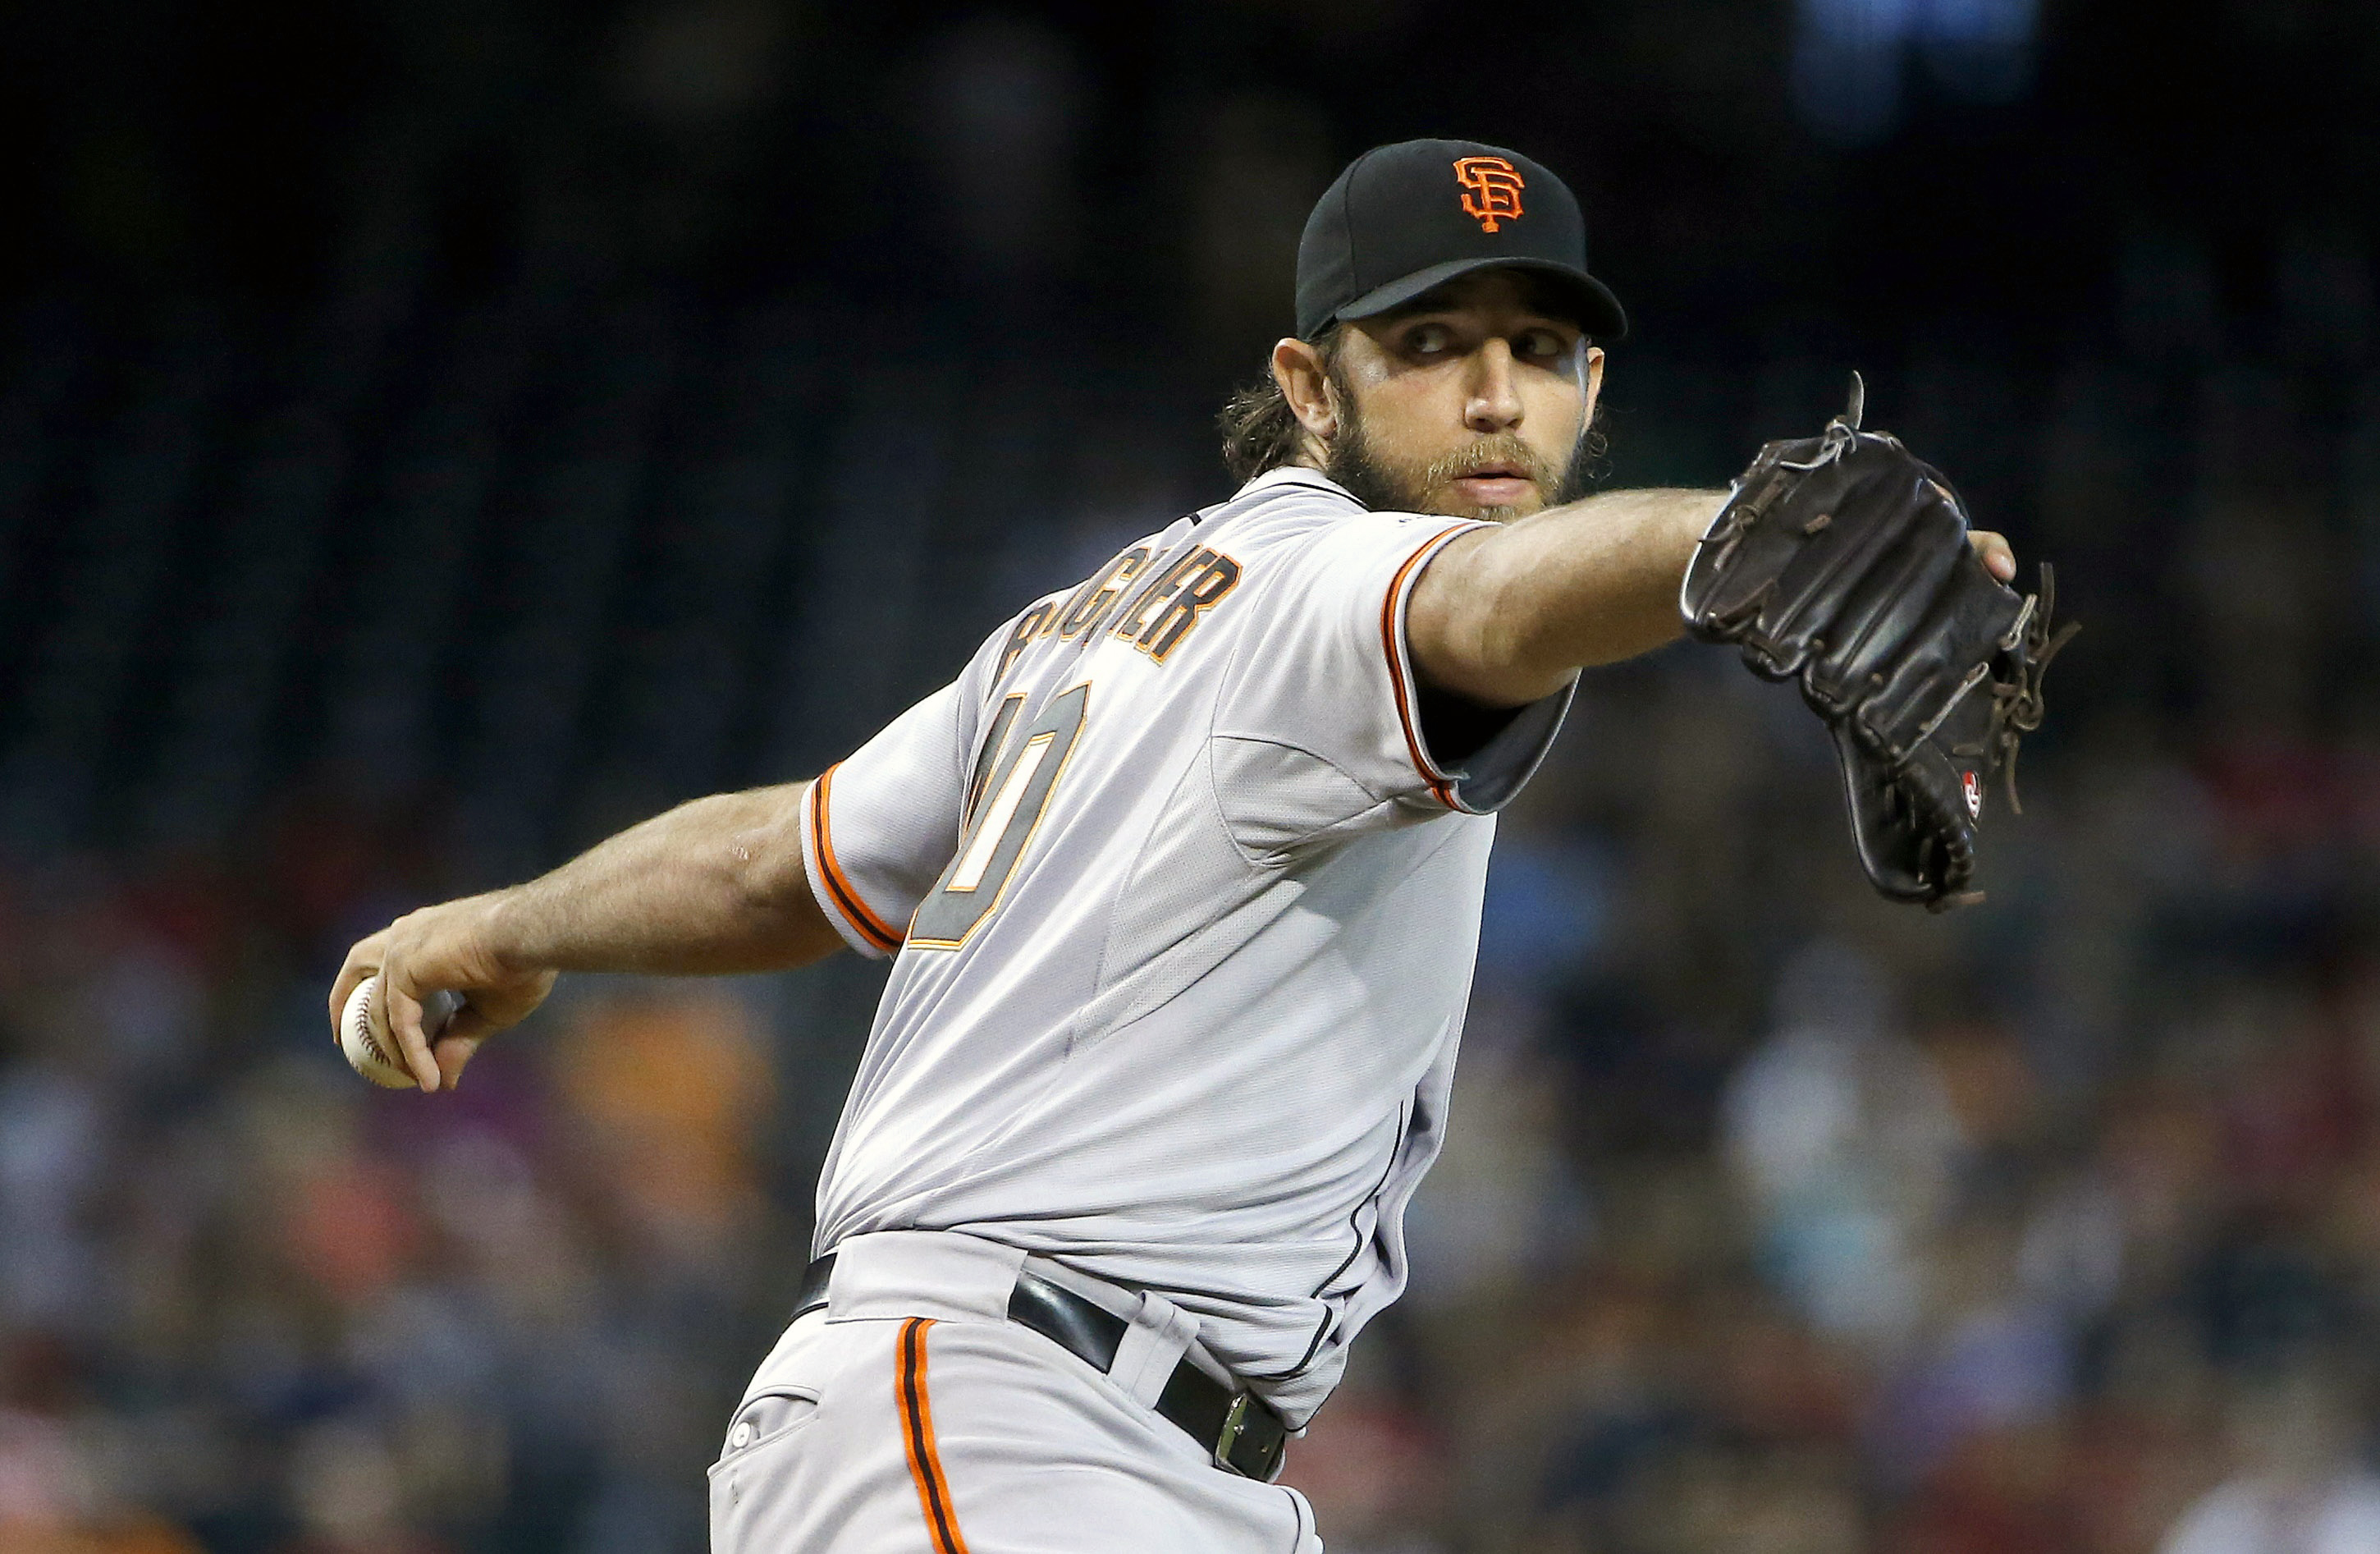 San Francisco Giants' Madison Bumgarner throws a pitch against the Arizona Diamondbacks during the first inning of a baseball game Sunday, July 19, 2015, in Phoenix. (AP Photo/Ross D. Franklin)